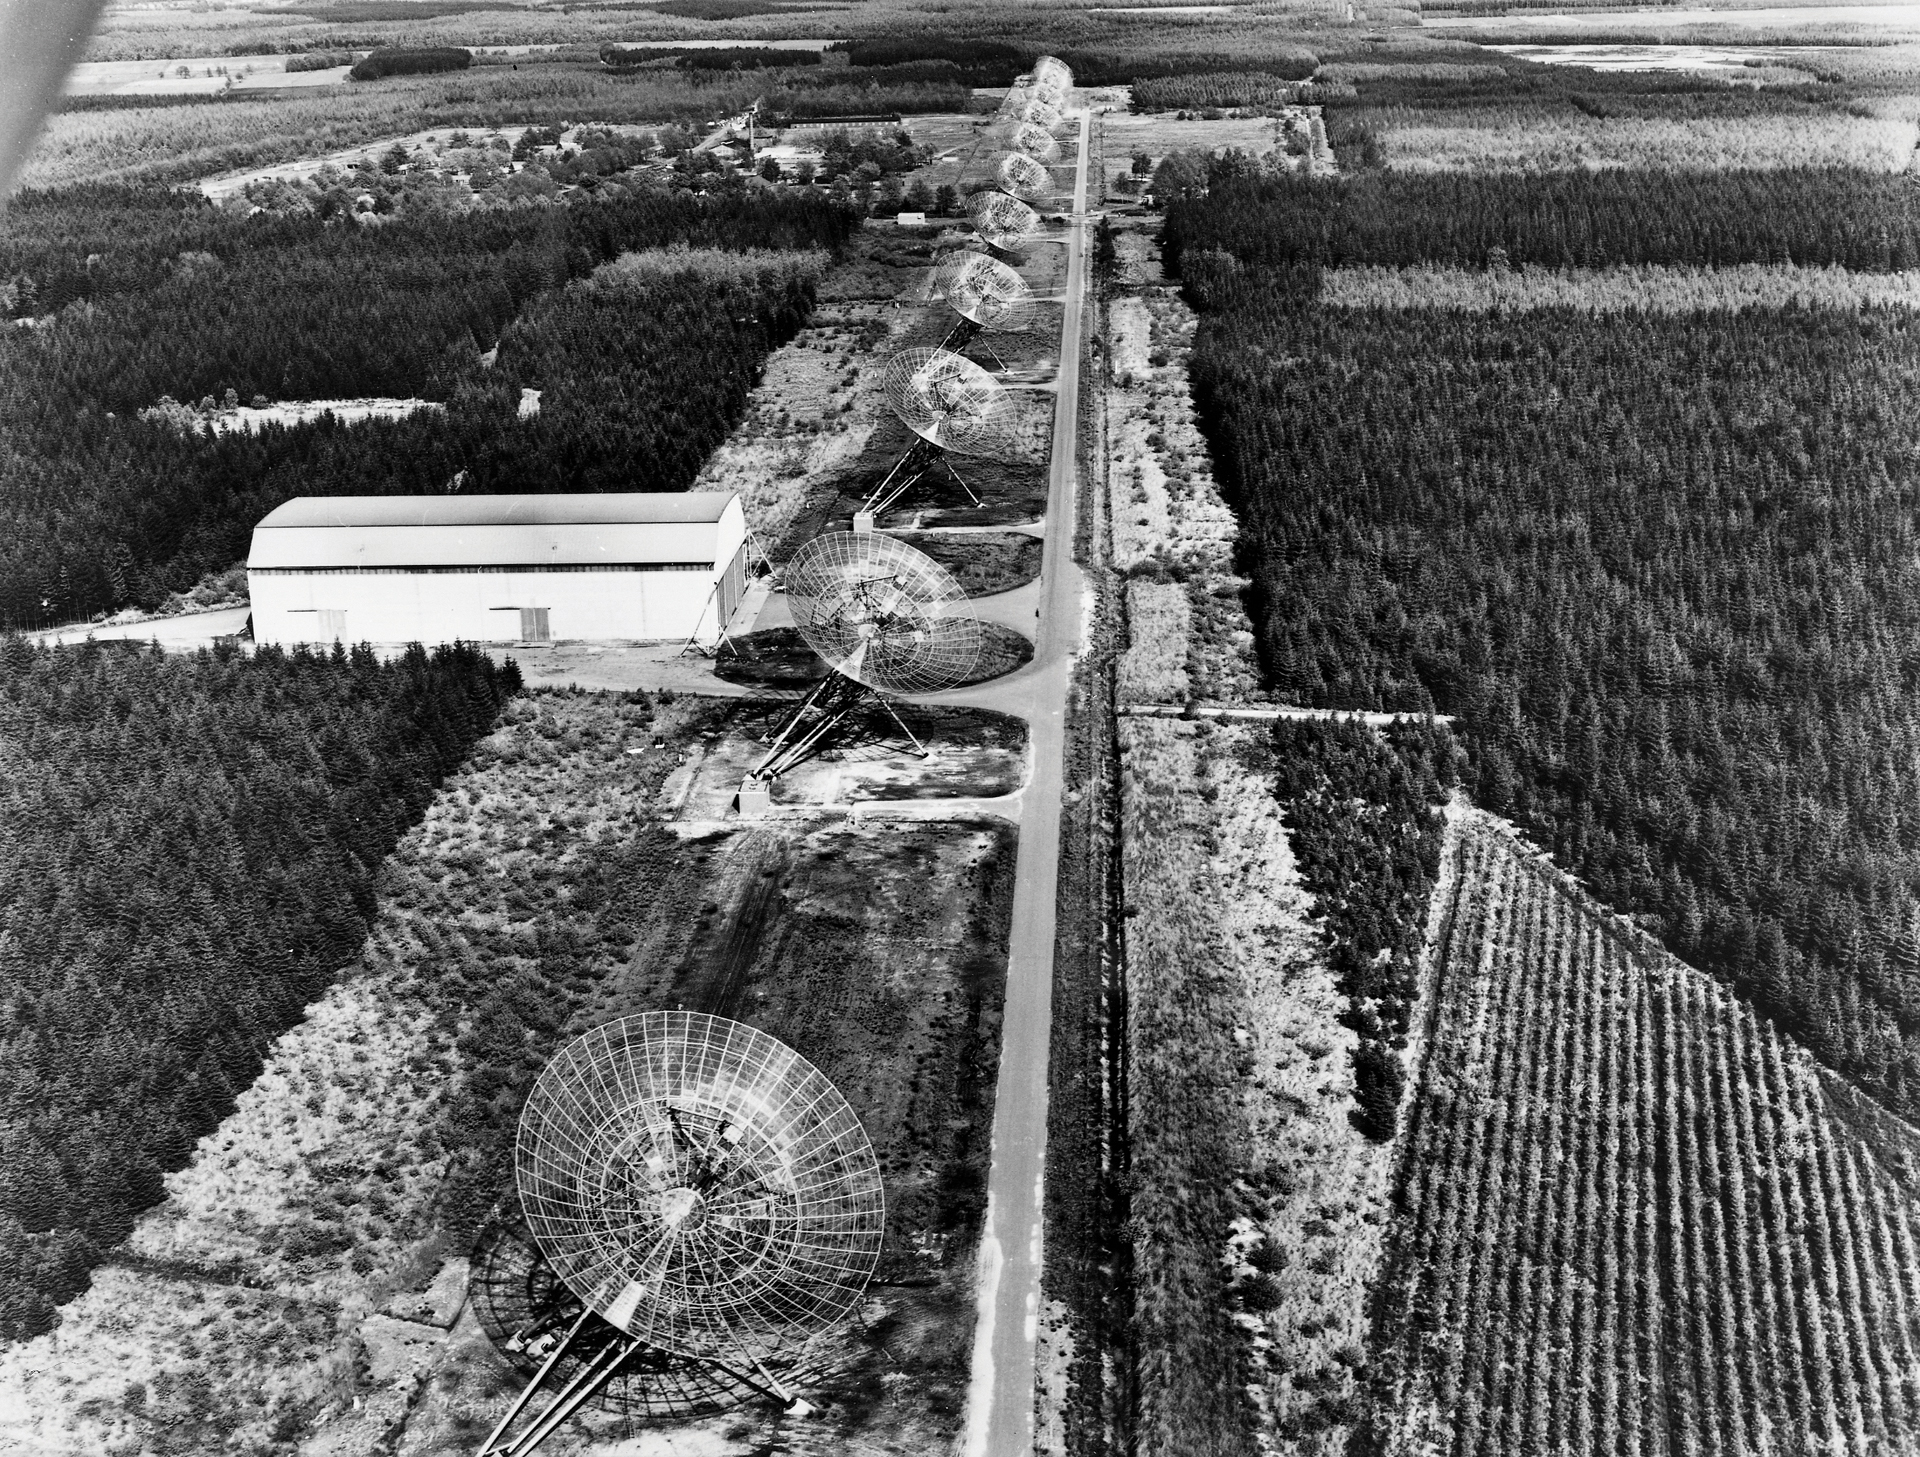 The Westerbork Synthesis Radio Telescope (WSRT)